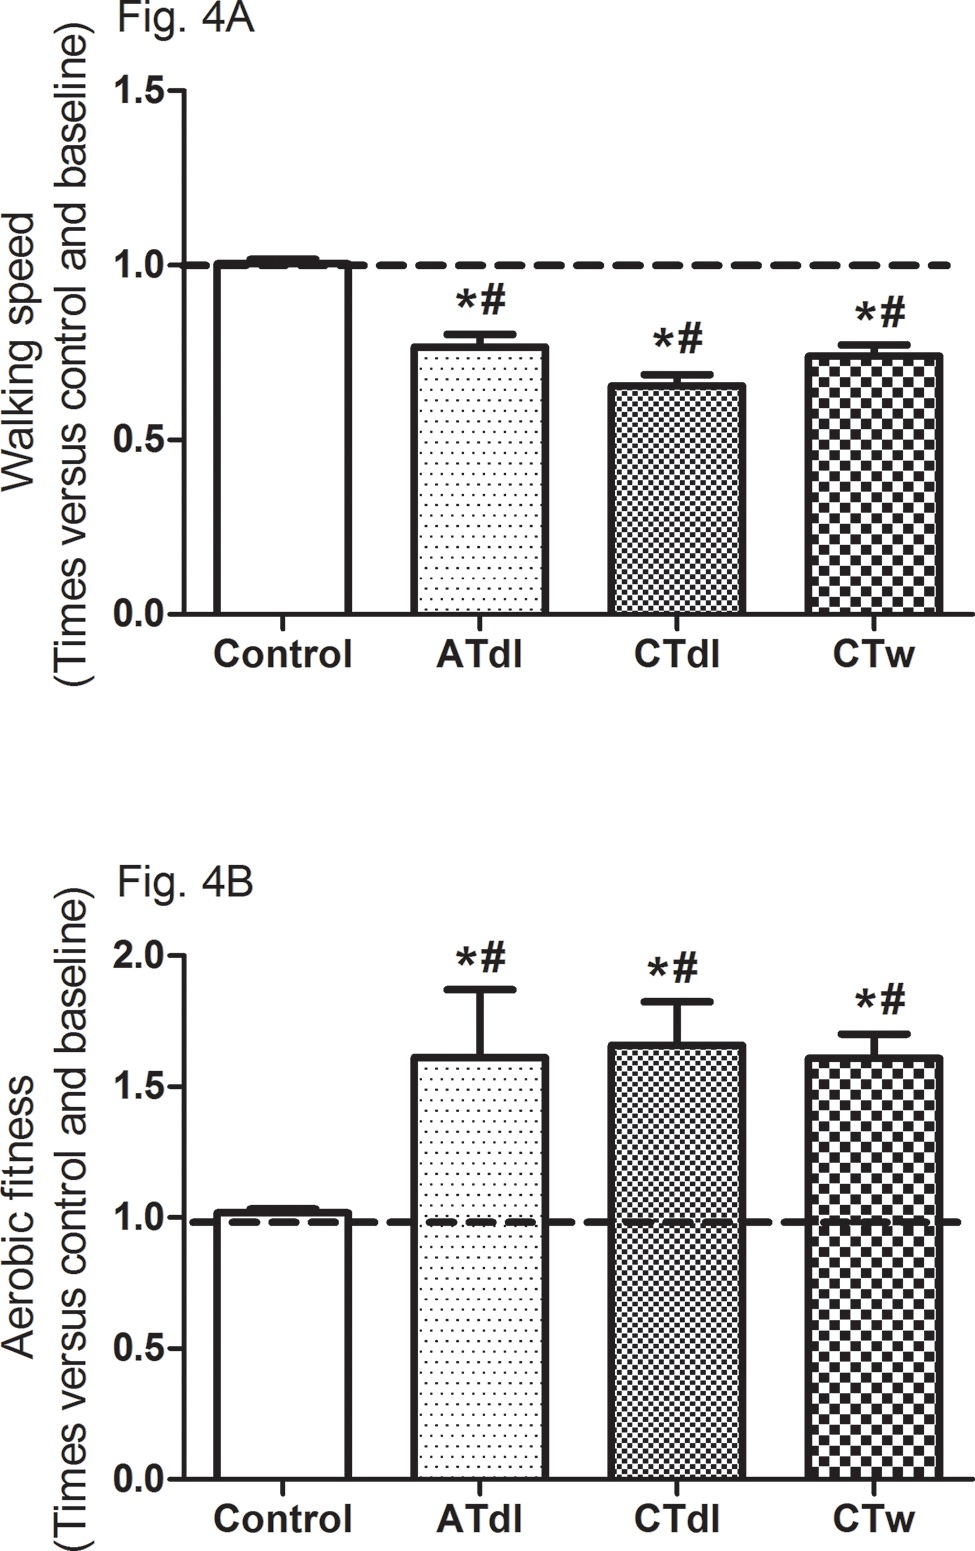 Effects of different training programs on walking speed and aerobic fitness (4A and 4B, respectively) of elderly individuals after 2 months of intervention with aerobic training on dry land (ATdl), combined training on dry land (CTdl), or combined training in water (CTw) three times a week for 60 min per session. The dotted line represents the baseline values of each group. The generalized estimating equations with Bonferroni post hoc correction were used to detect the intragroup significant differences. *Baseline versus posttraining and between groups, #training groups versus control in the posttraining period with a significance level of p<0.05.